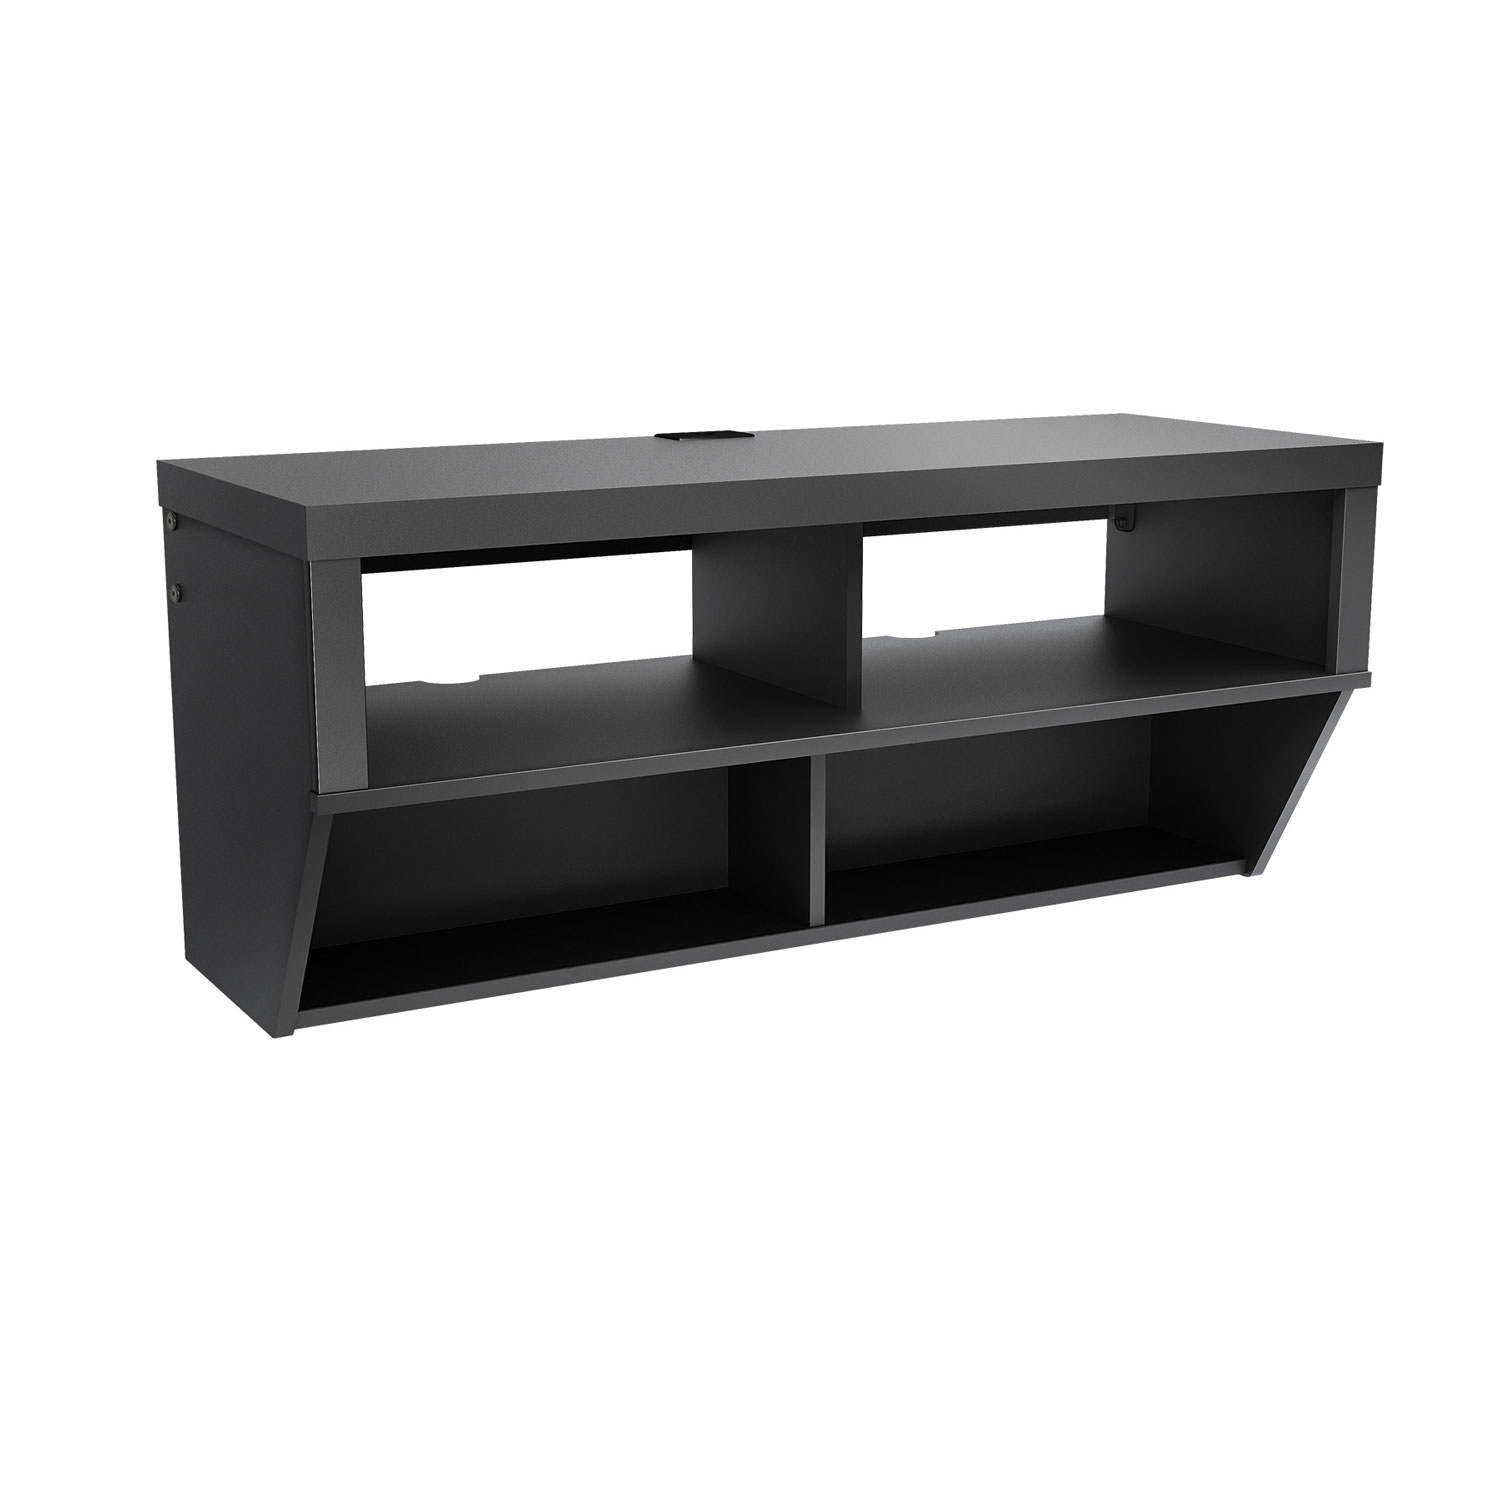 Hanging Media Console Black 42 Inch Wide Wall Mounted Entertainment Console